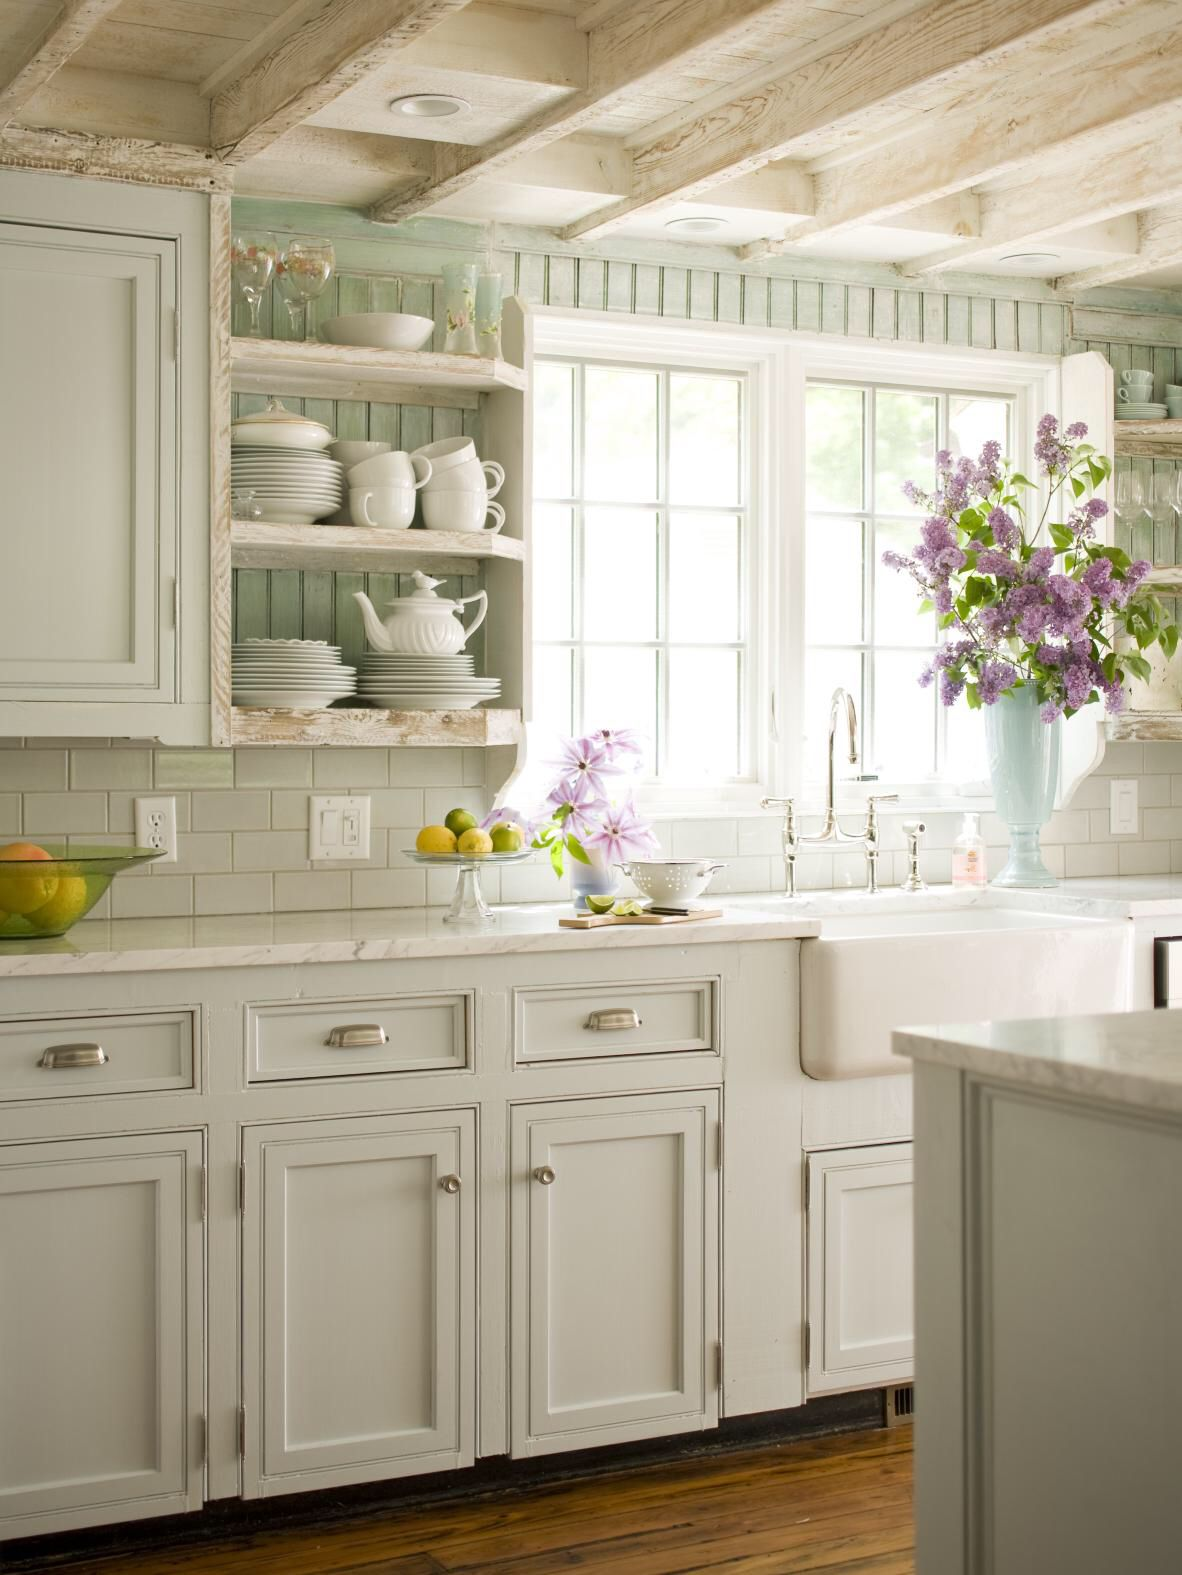 Image from http://meddiodesign.com/wp-content/uploads/2015/01/kitchen-beautiful-cottage-with-wooden-floor-and-ceiling-also-wooden-wall-with-white-ceramics-backplashes-also-white-wooden-kitchen-storage-cabinet-and-wall-mounted-cabinet-and-shelves-also-wooden-whit.jpg.